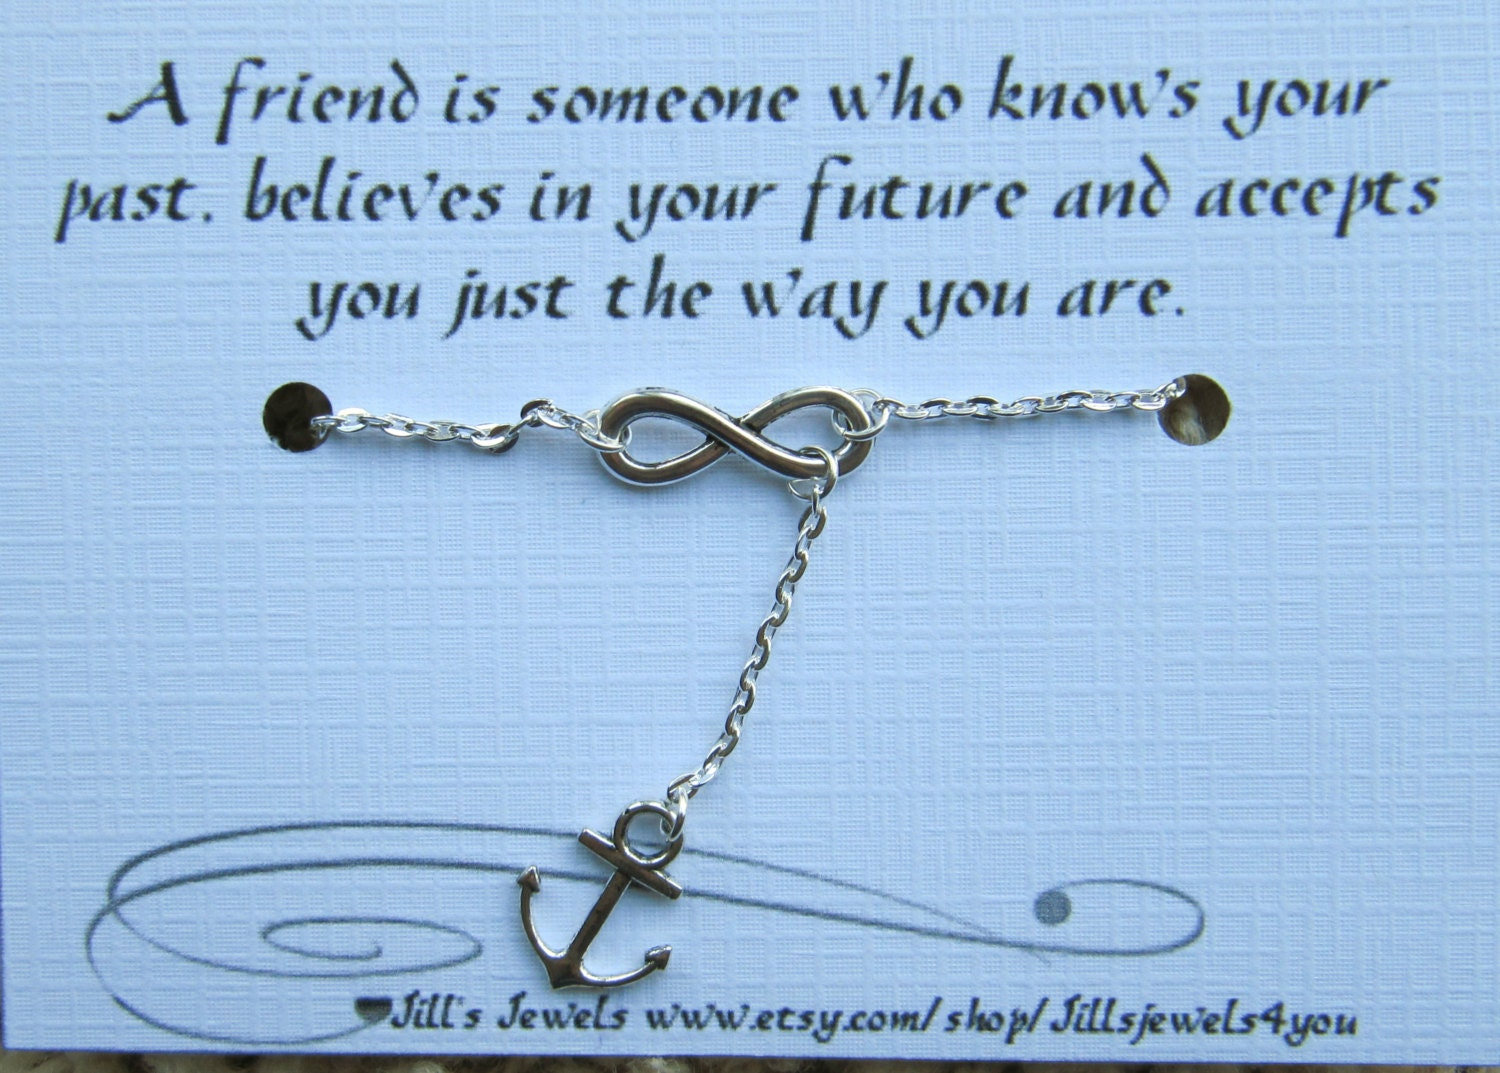 Quotes About Pearls And Friendship Infinity And Anchor Charm Anklet And Quote Inspirational Card